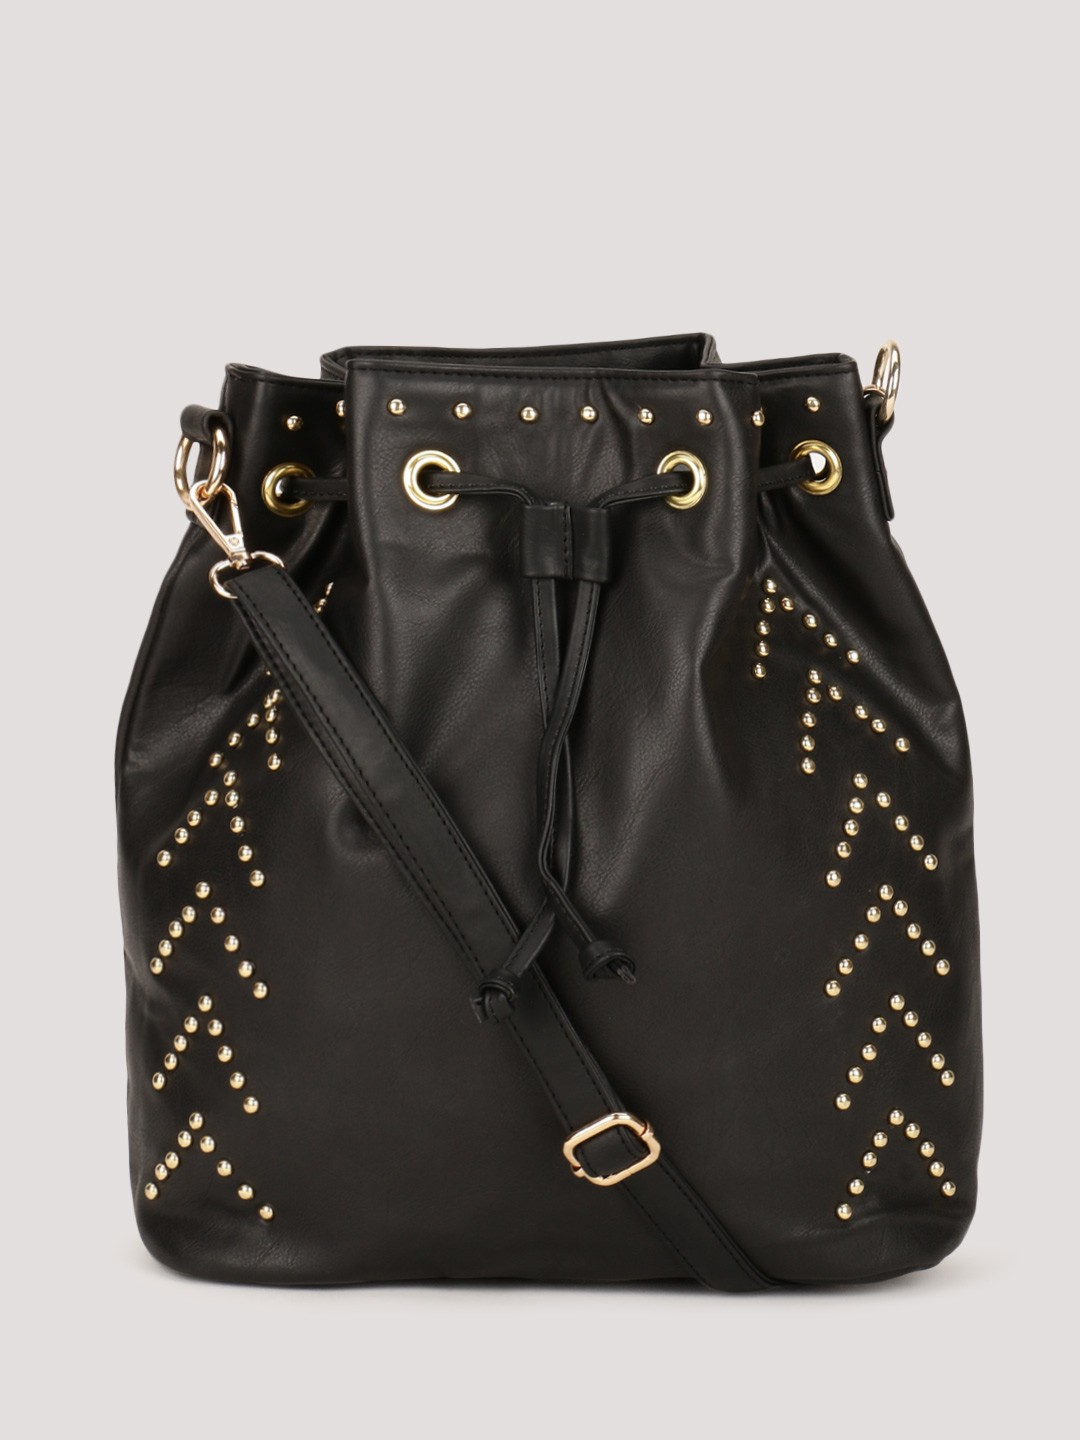 Buy PARIS BELLE Studded Bucket Sling Bag For Women - Women's Black ...